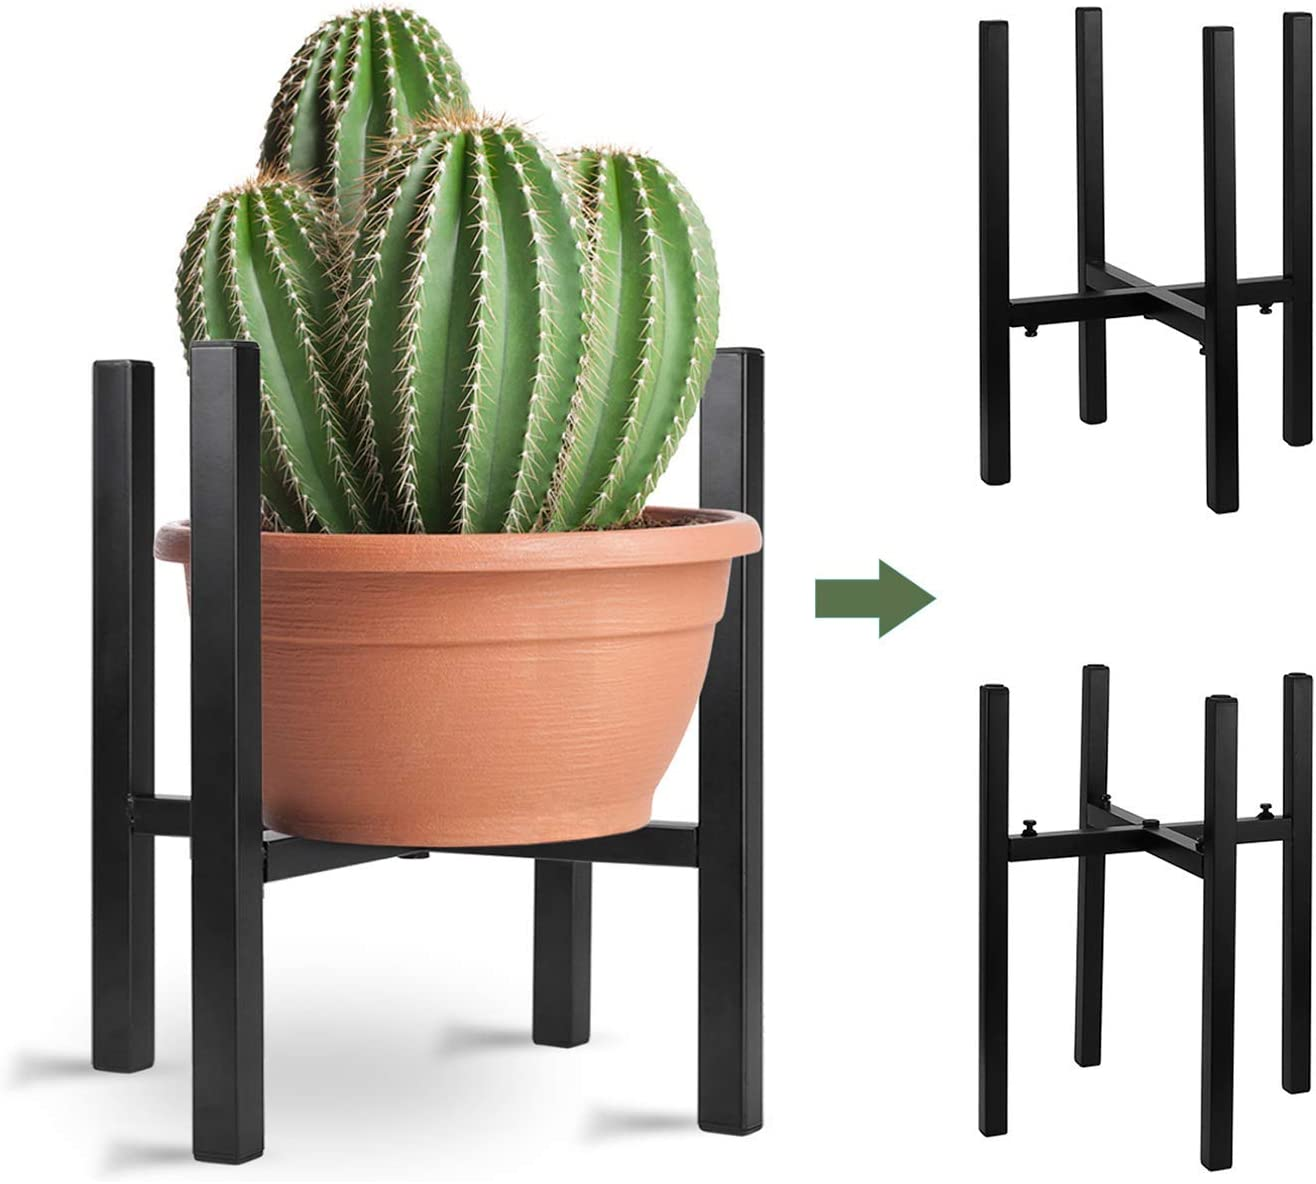 "Adjustable Metal Plant Stand for Indoor & Outdoor Plants, Mid Century Modern Planter Stands Width(10"" to 15.5"") Flower Pot Stand (Pot&Planter Not Included) ,Black"